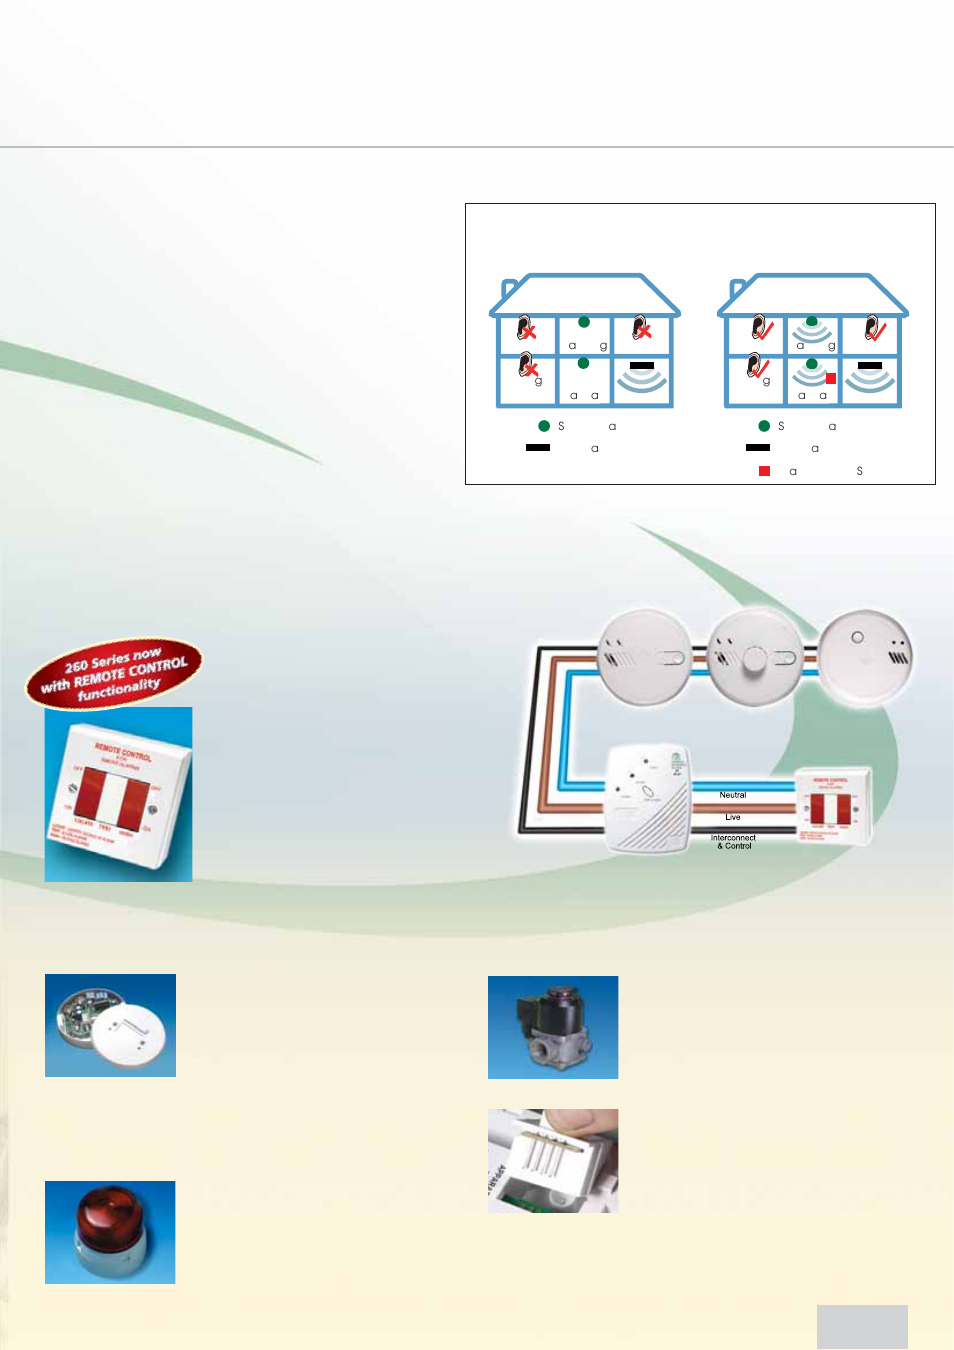 aico carbon monoxide alarms 260 series page9 ei1529rc alarm control switch, wiring diagram ei1529rc alarm ct test switch wiring diagram at n-0.co